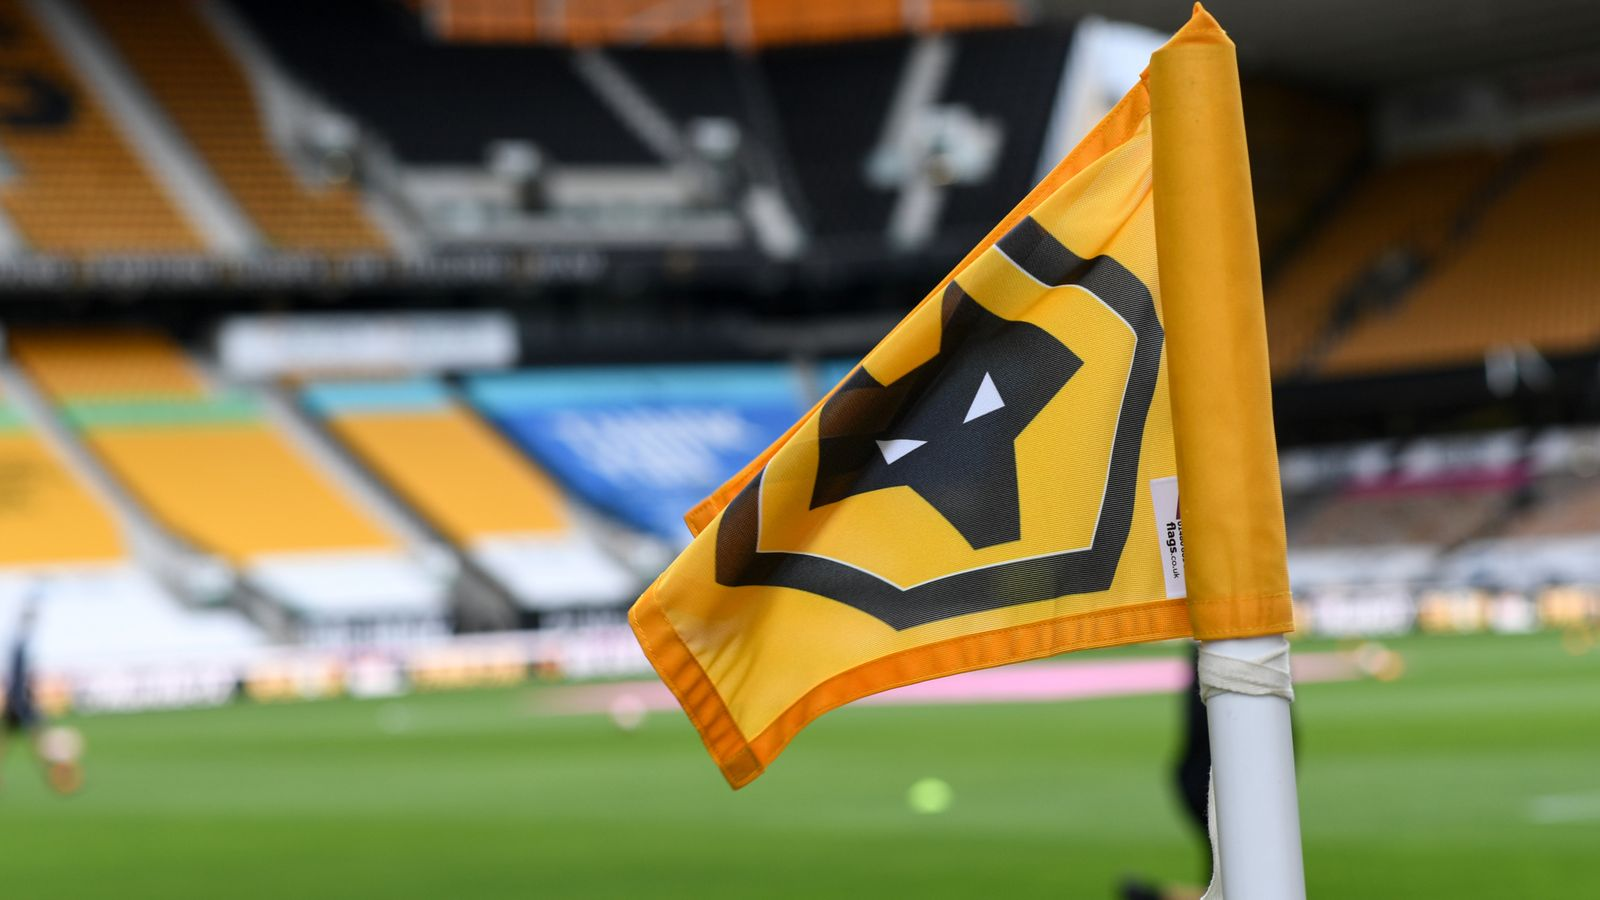 Wolves punished for breaching UEFA financial rules - Sky Sports